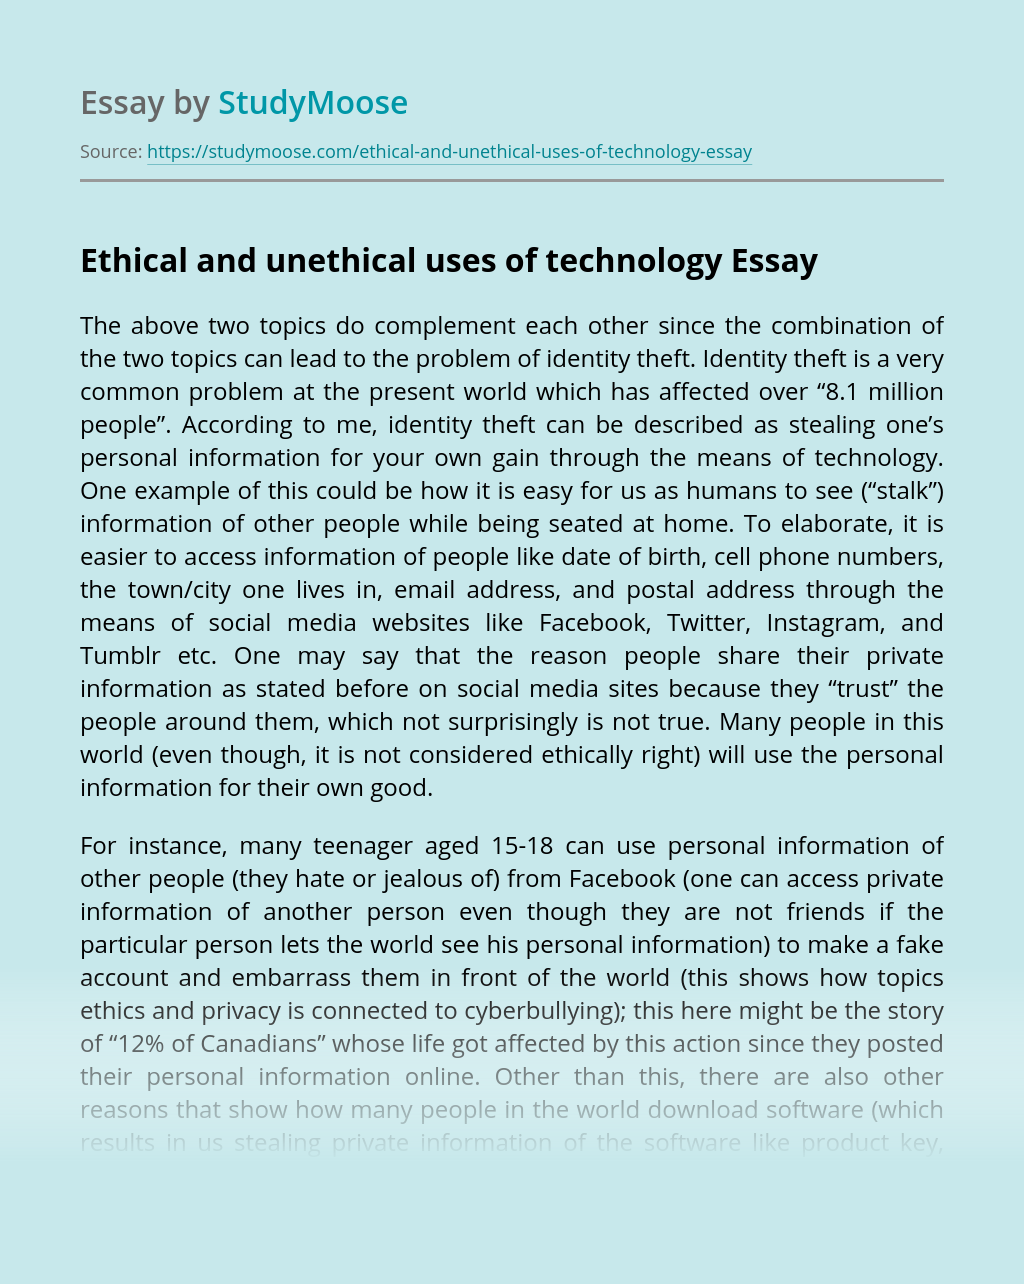 Ethical and unethical uses of technology